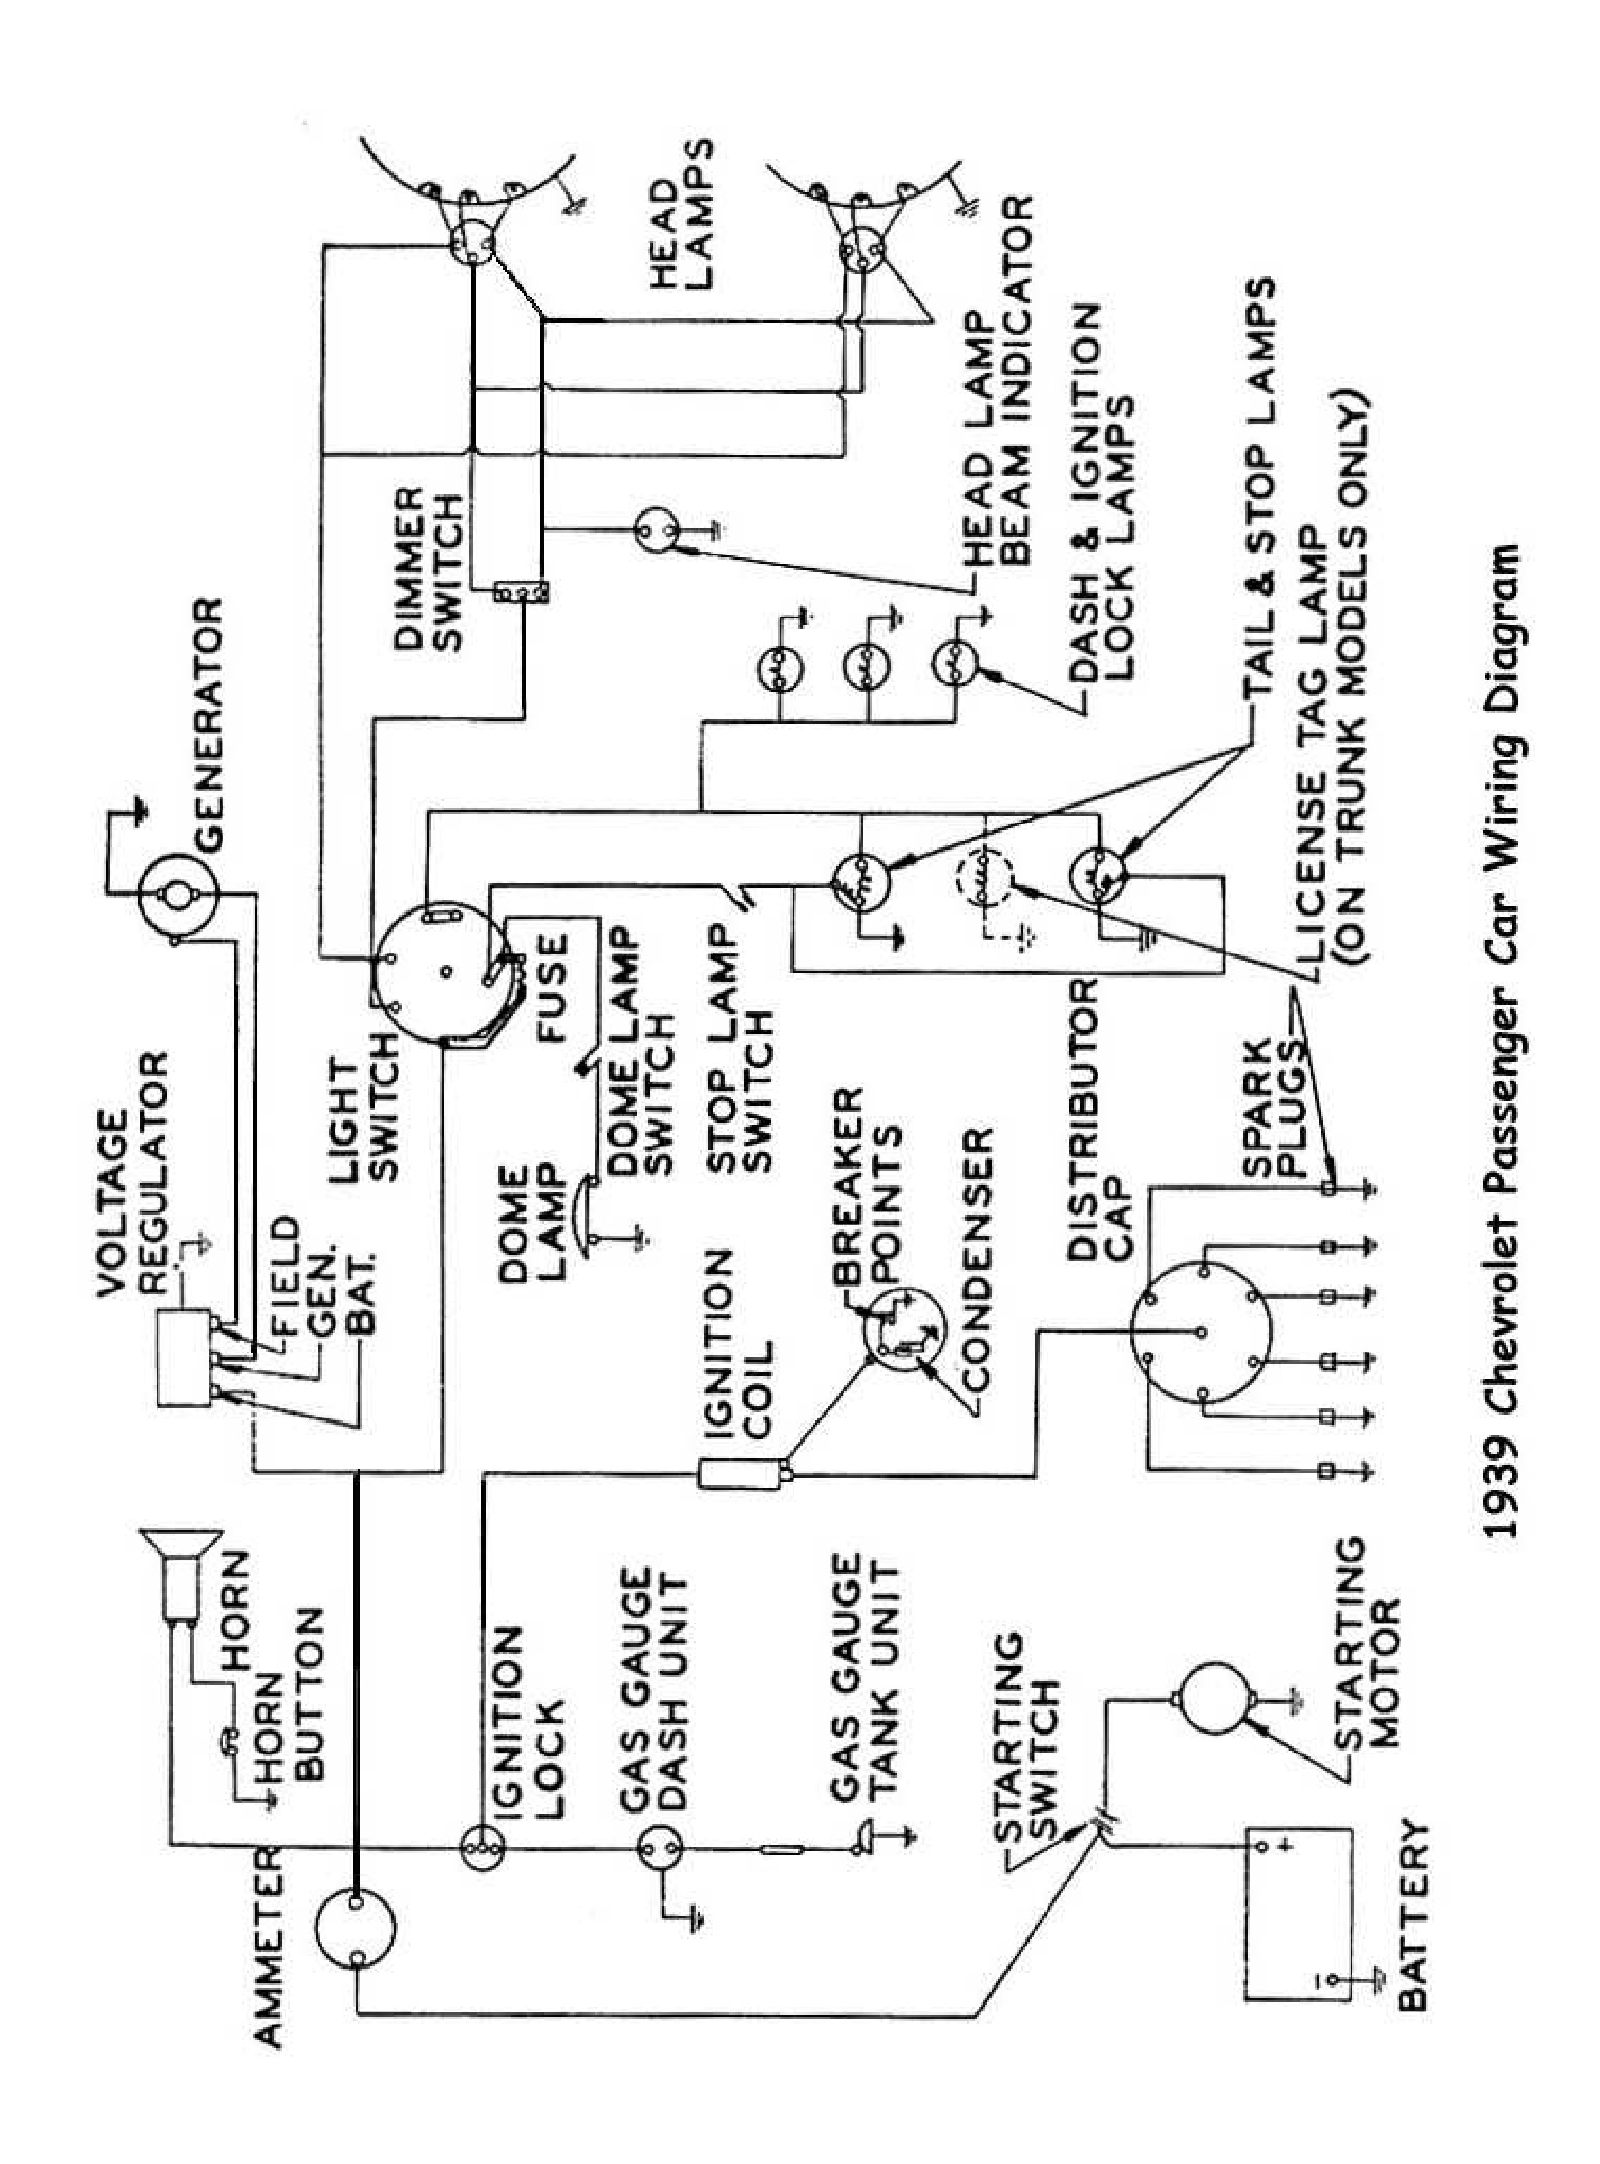 39car chevy wiring diagrams electrical wiring diagrams for cars at bayanpartner.co